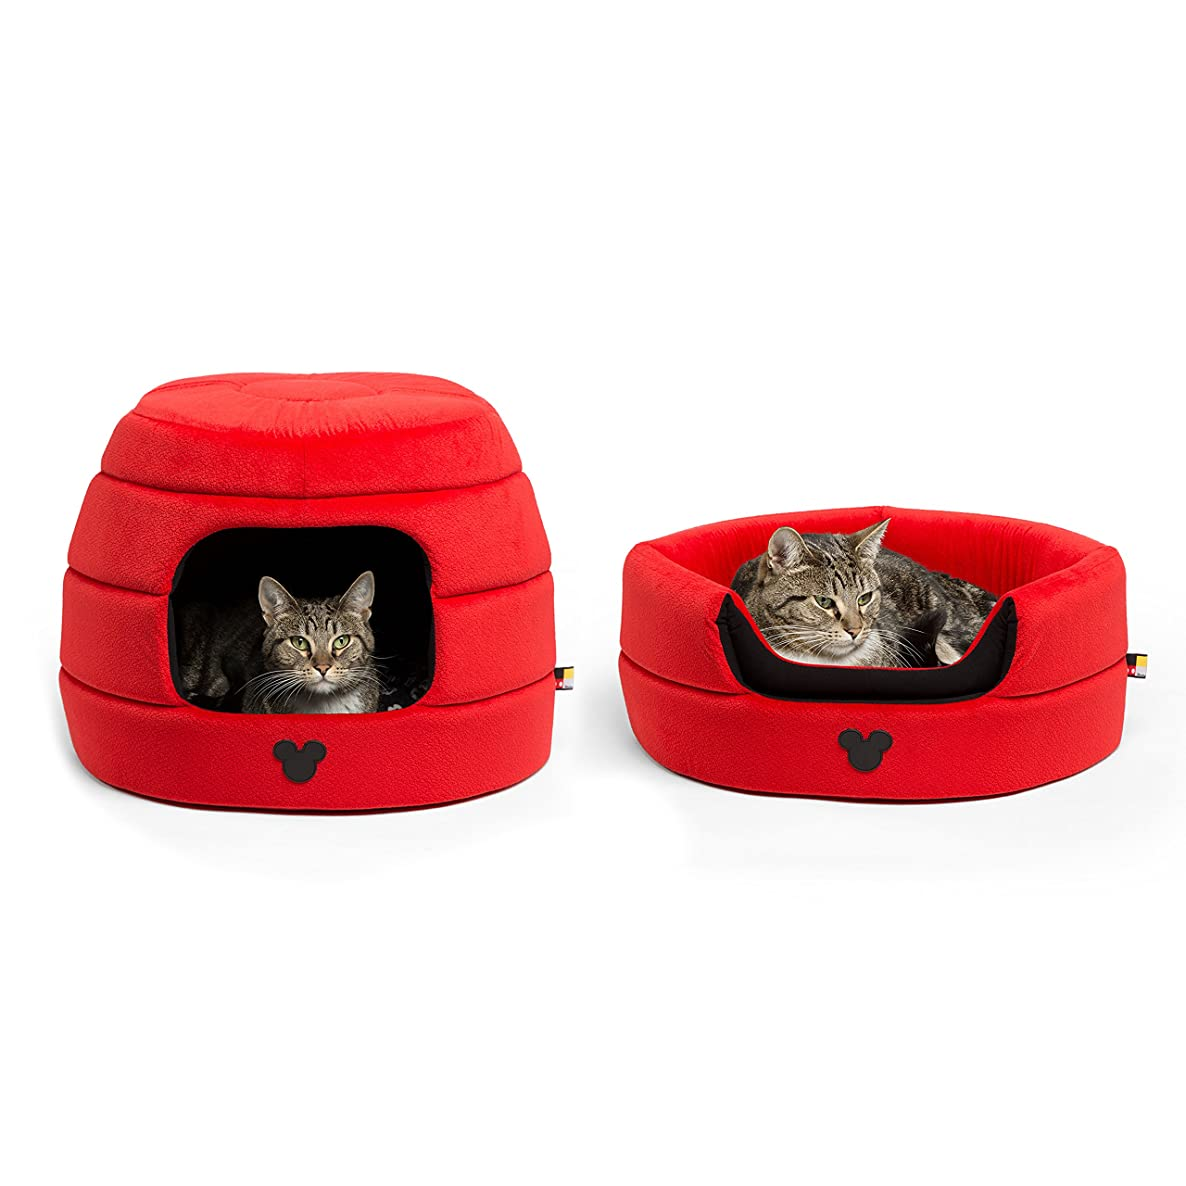 Disney Mickey Mouse 2-in-1 Honeycomb Hut Cuddler in Mickey Bobble (Dog Bed/Cat Bed)